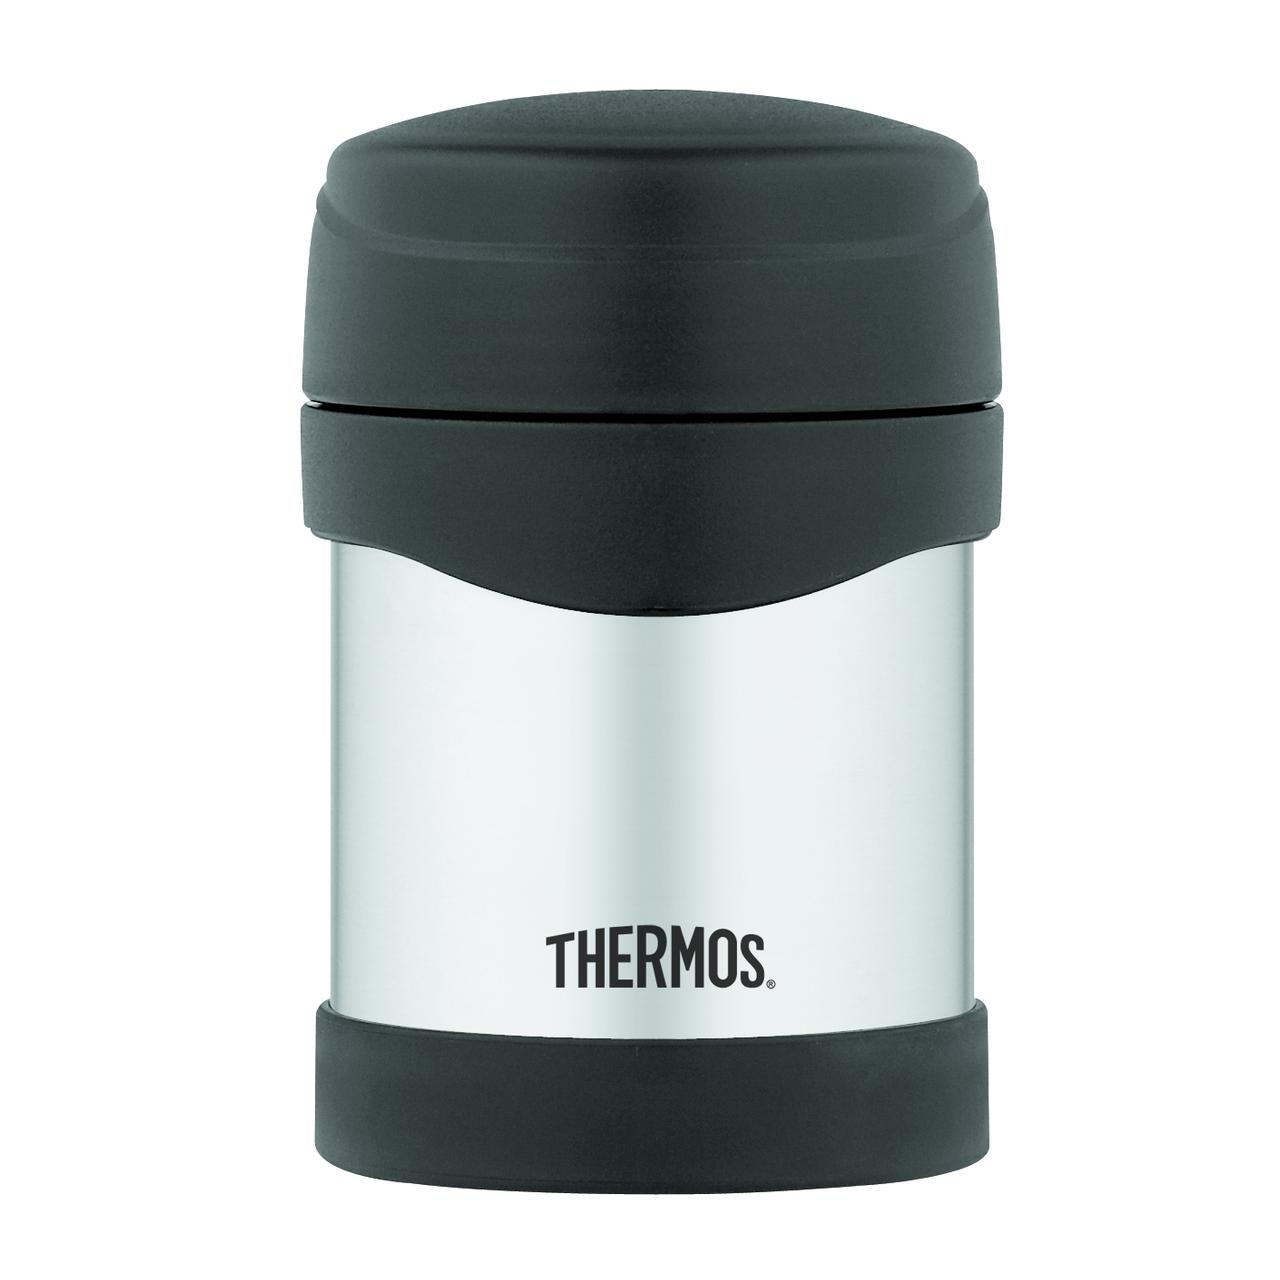 thermos food jar thermos 10 oz stainless steel food jar walmart 30651